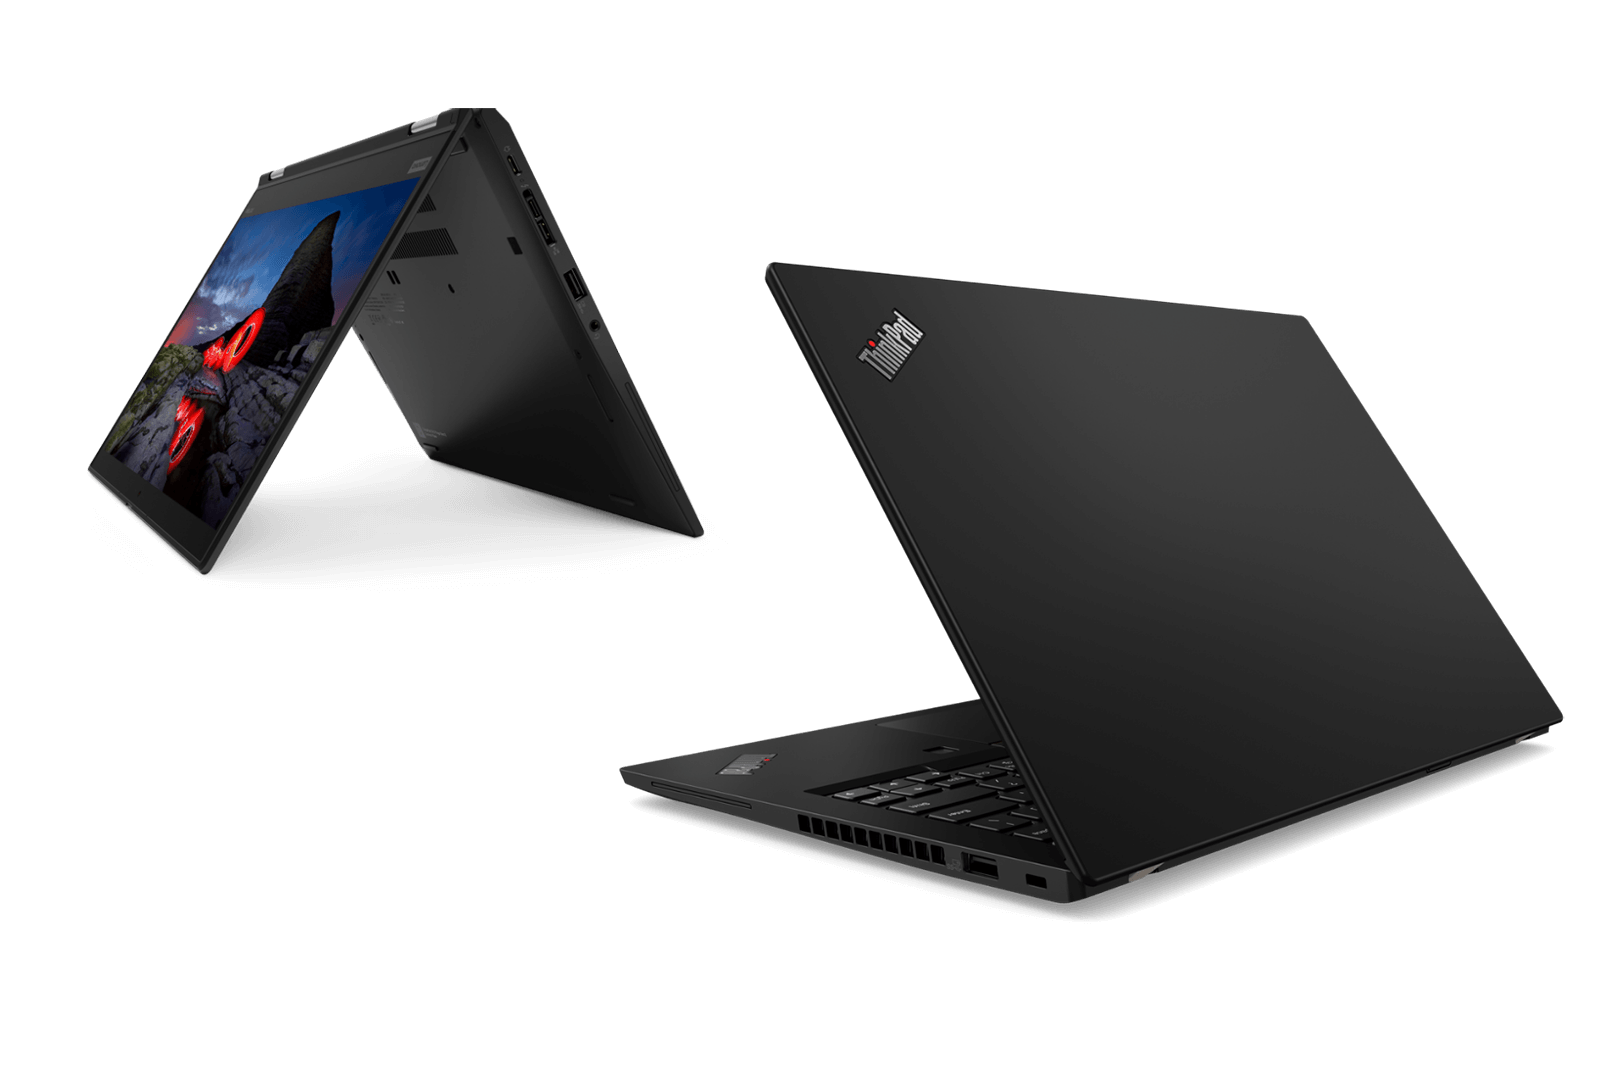 Lenovo ThinkPad X13 laptop in 3/4 rear view and ThinkPad X13 Yoga in tent mode at 3/4 front view